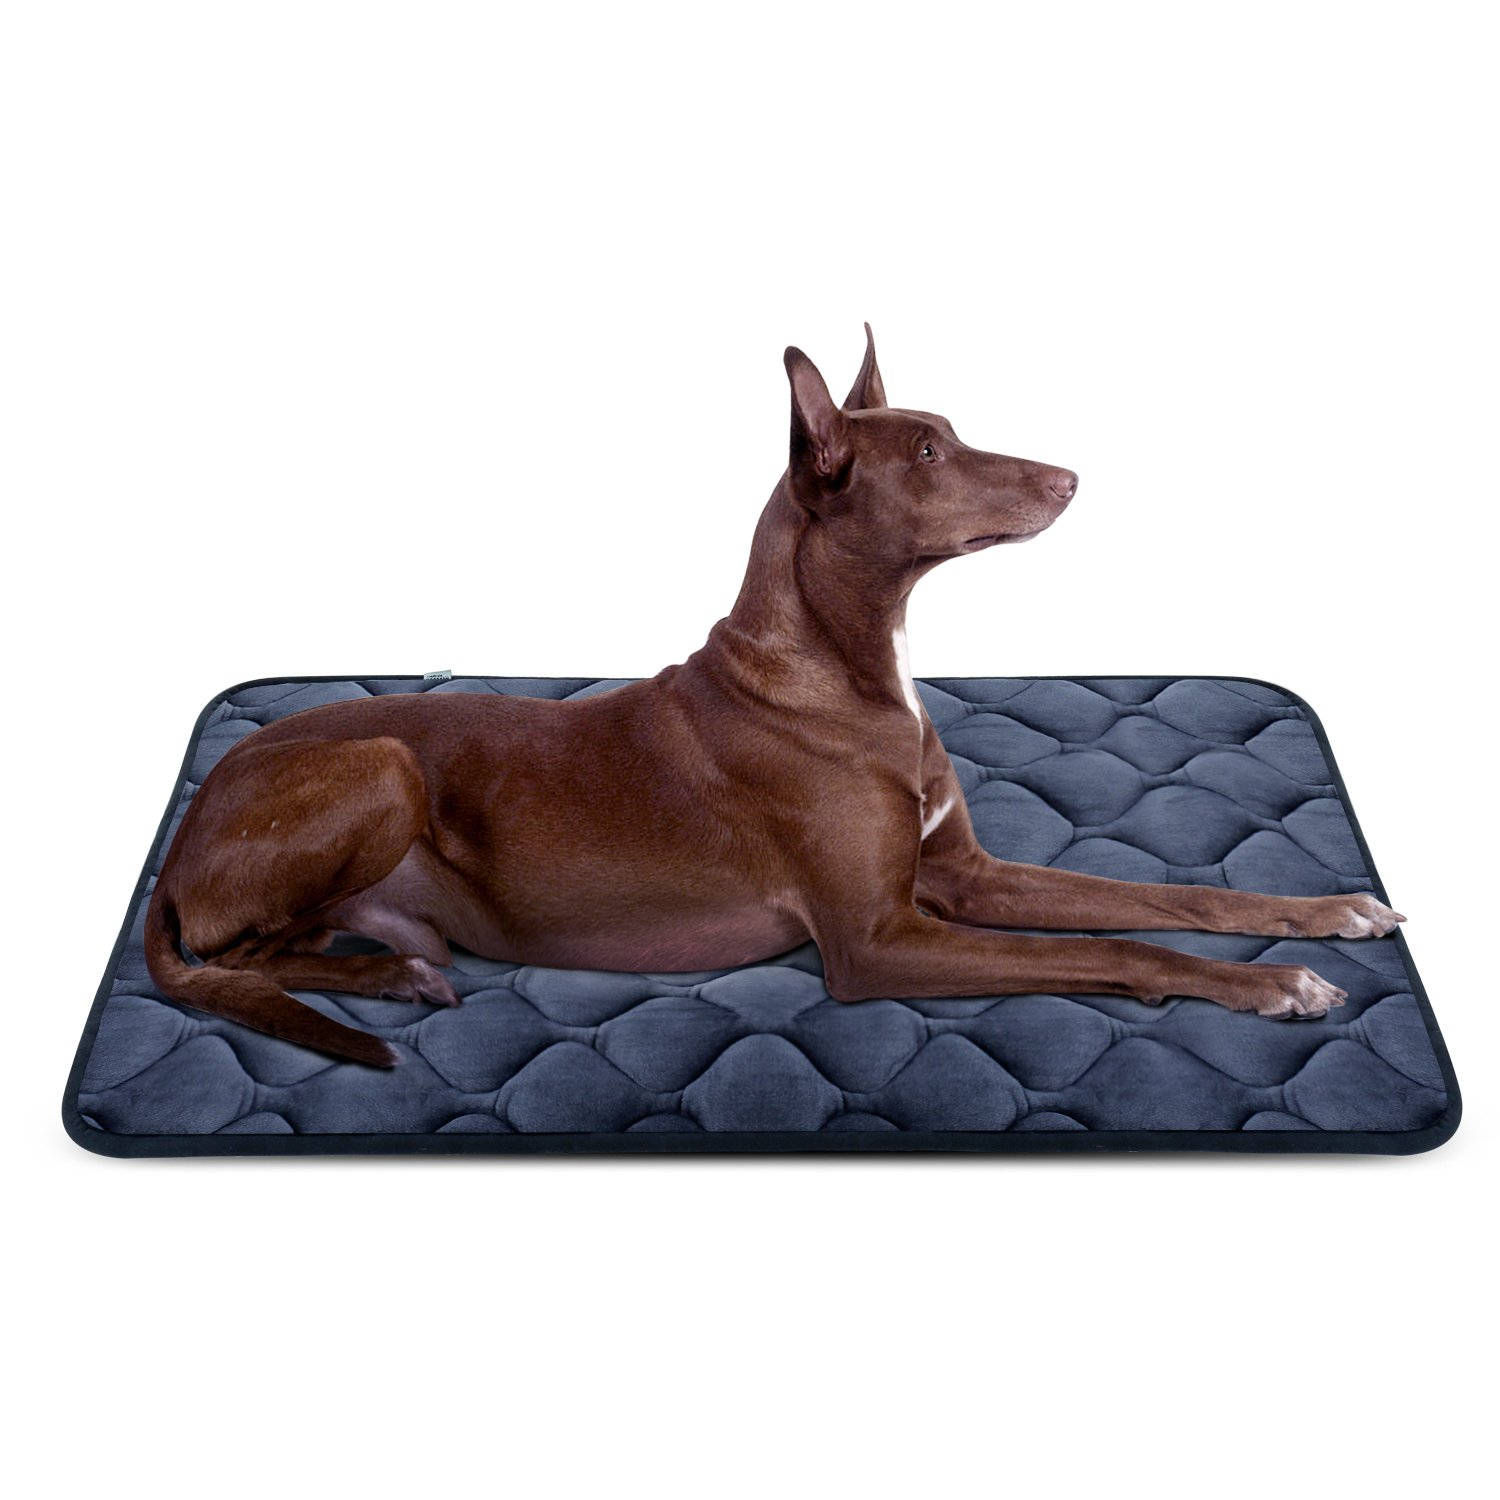 Hero Dog Large Dog Bed Mat 42 Inch Crate Pad Anti Slip Mattress Washable for Pets Sleeping (Grey L) by Hero Dog